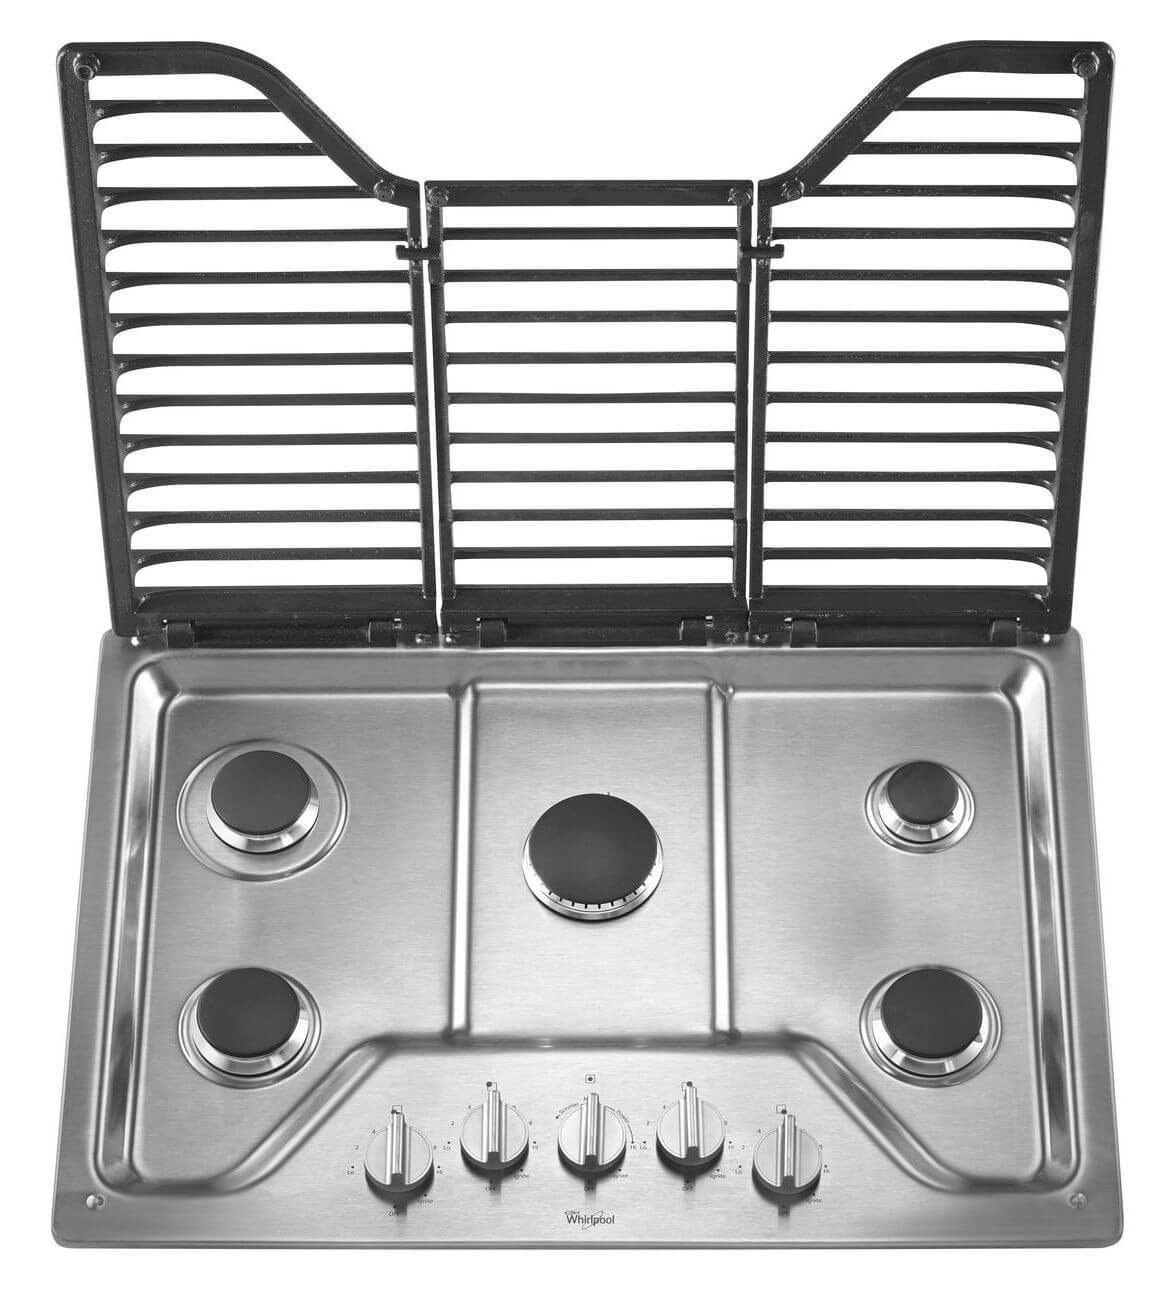 Amazon.com: Whirlpool 30 inch 5 Burner Gas Cooktop with EZ-2-Lift ...